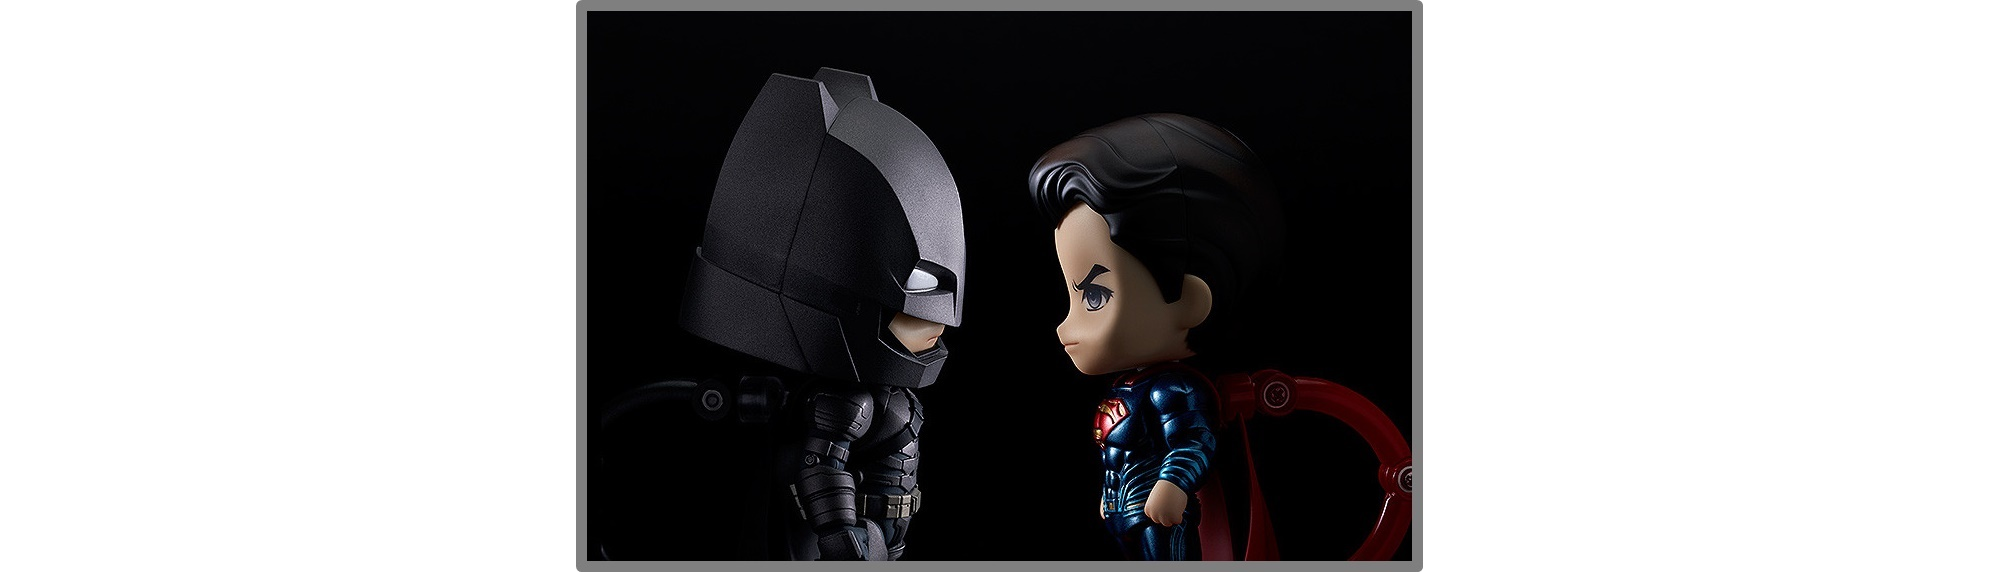 Good Smile Company – Nendoroid: Batman & Superman Figures